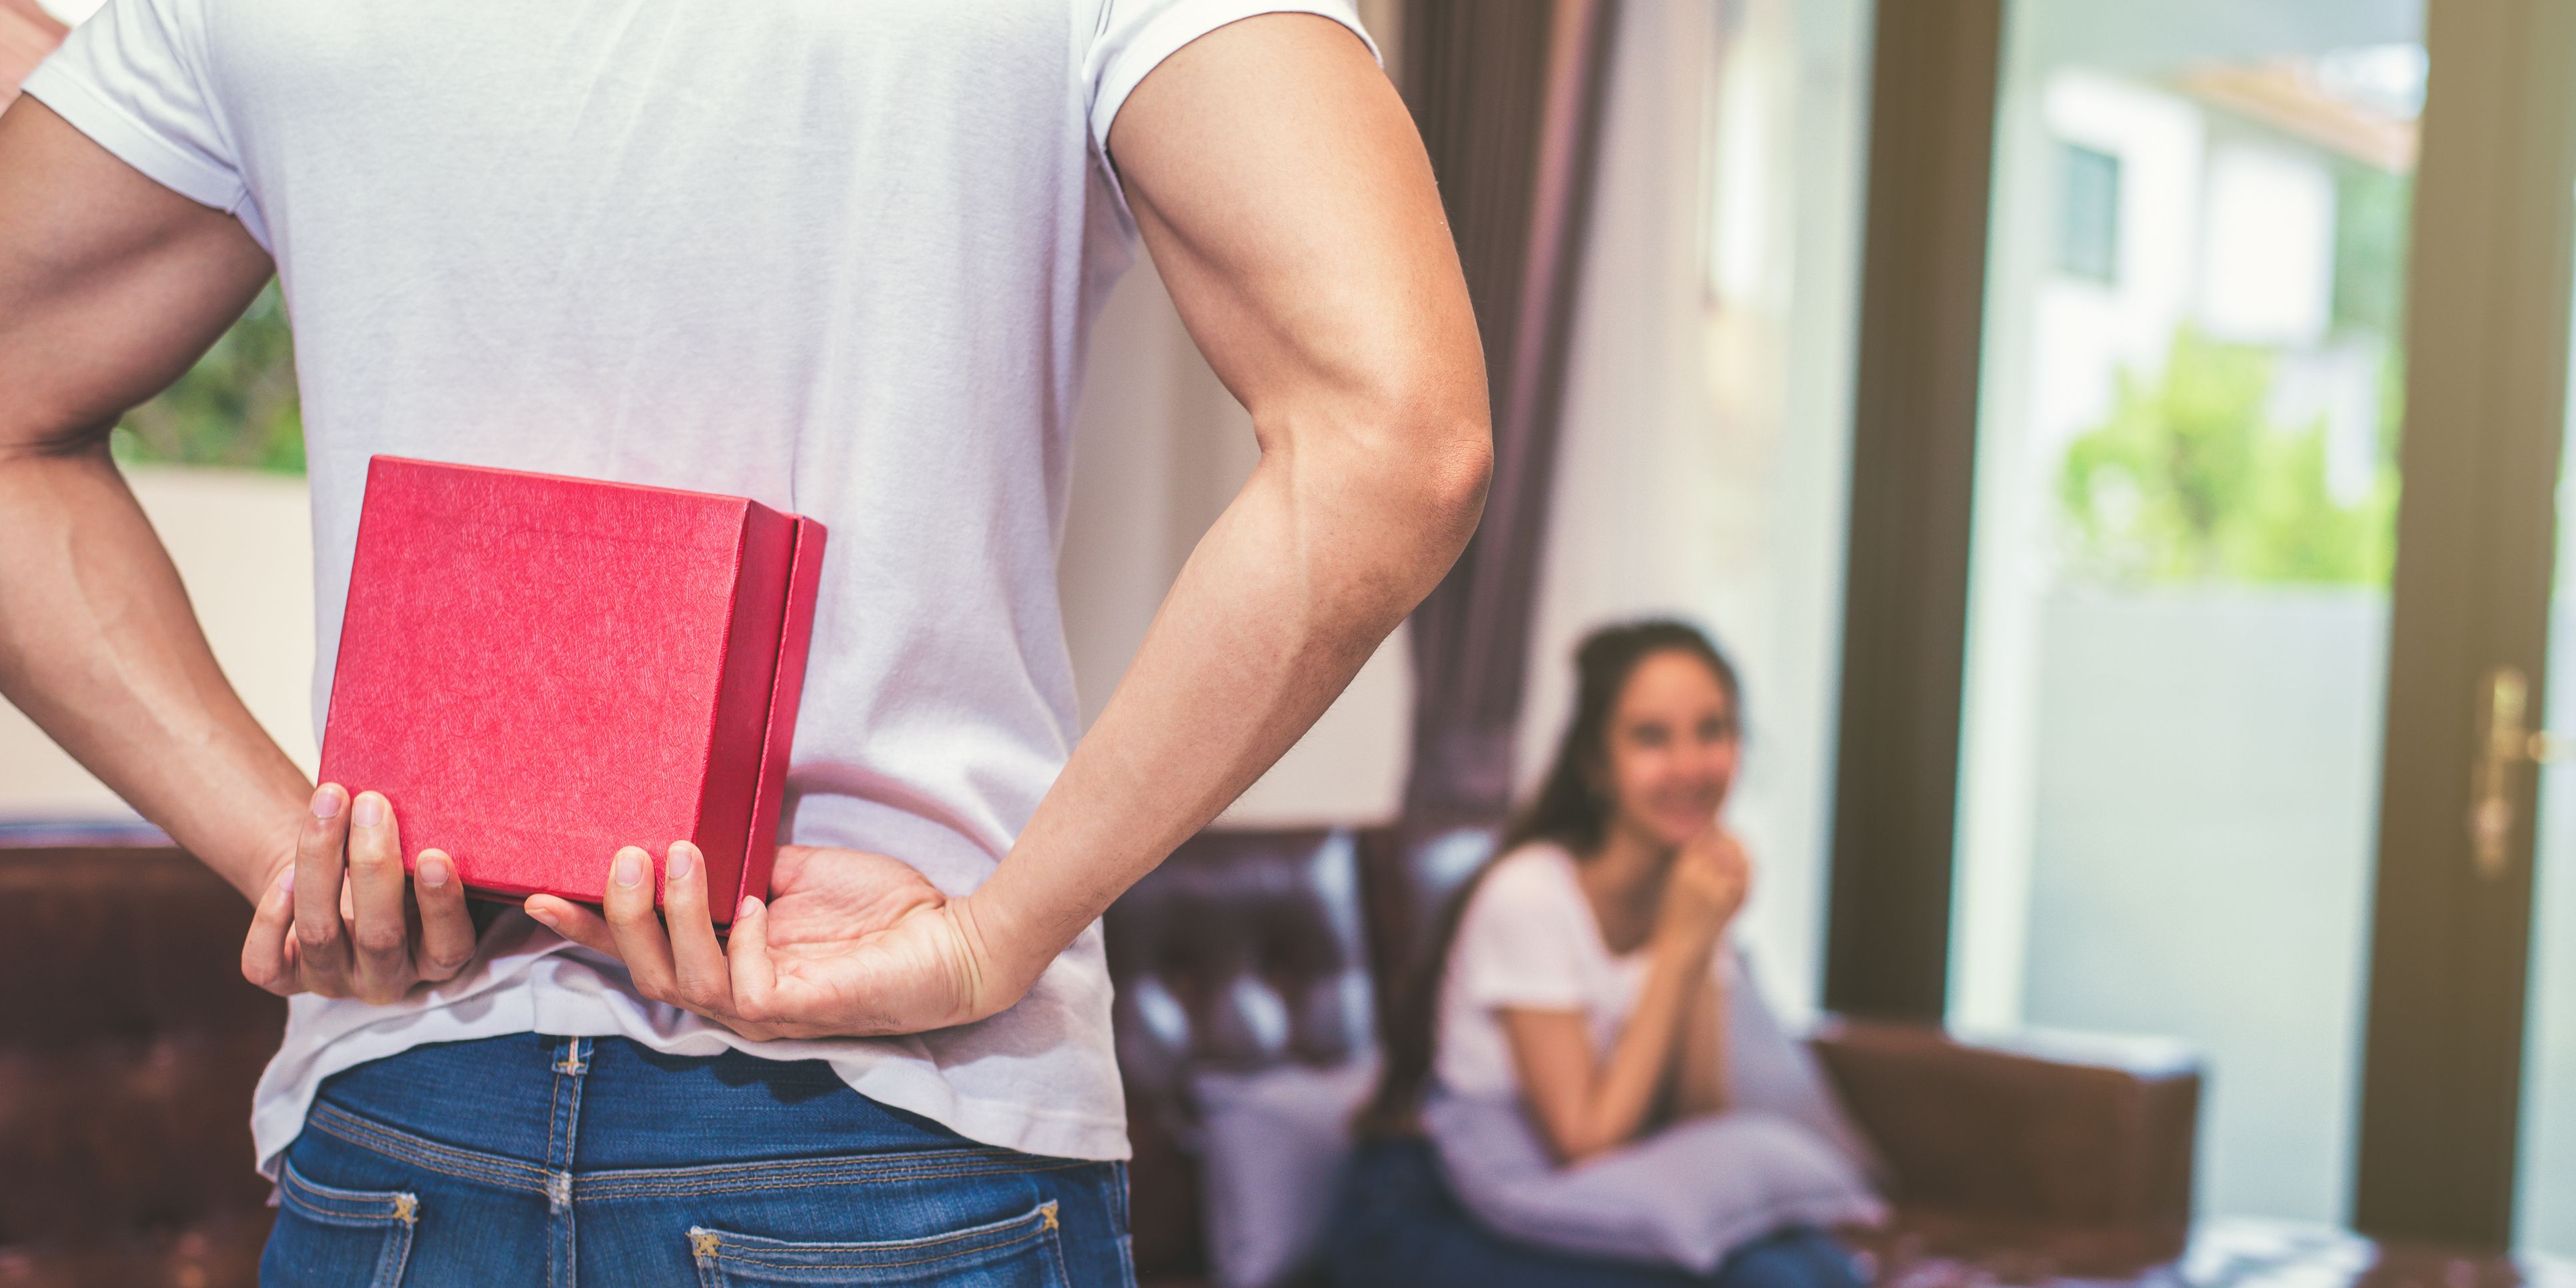 Midsection Of Boyfriend Hiding Gift While Girlfriend Sitting On Sofa At Home